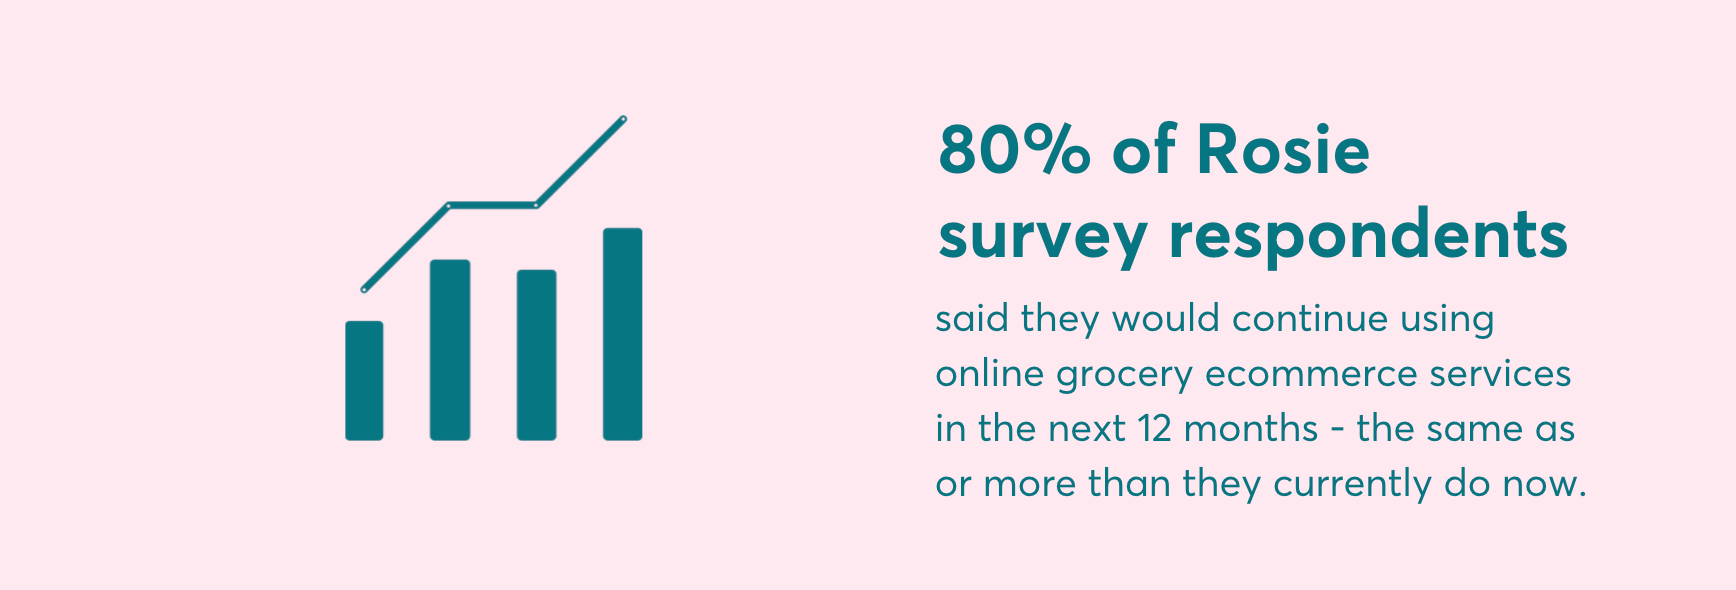 Image of a bar graph with the text 80% of Rosie survey respondents said they would continue using online grocery ecommerce services in the next 12 months - the same as or more than they currently do now.